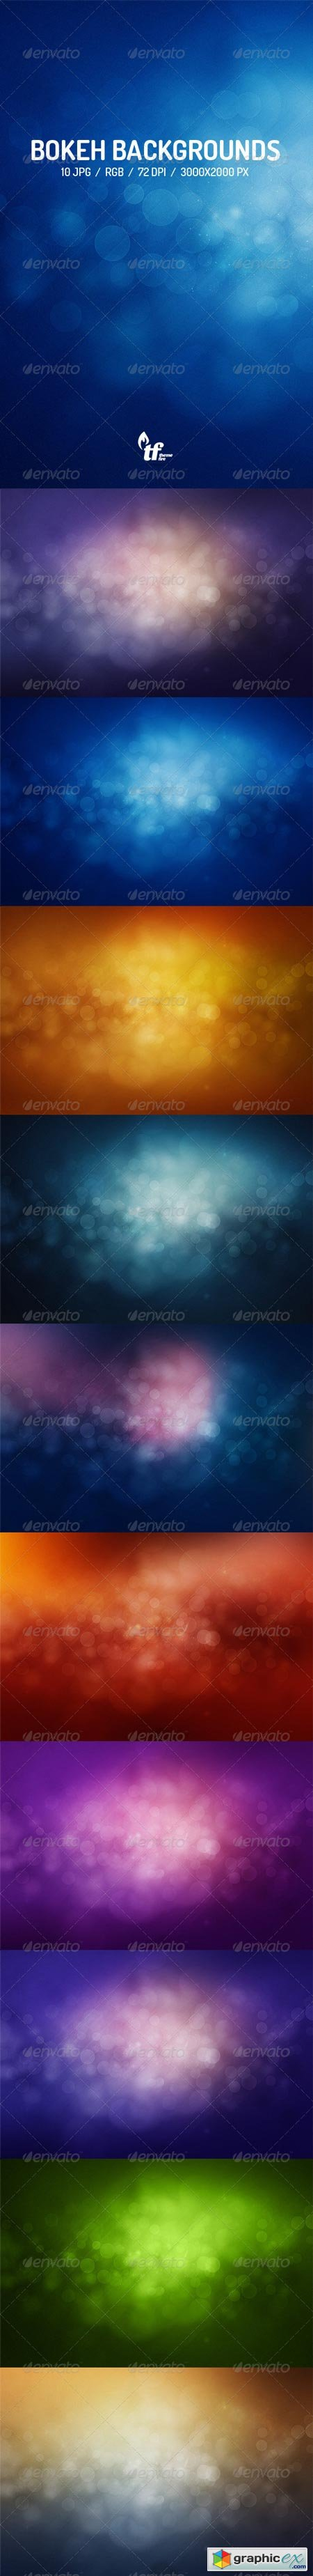 Abstract Bokeh Backgrounds 7691639